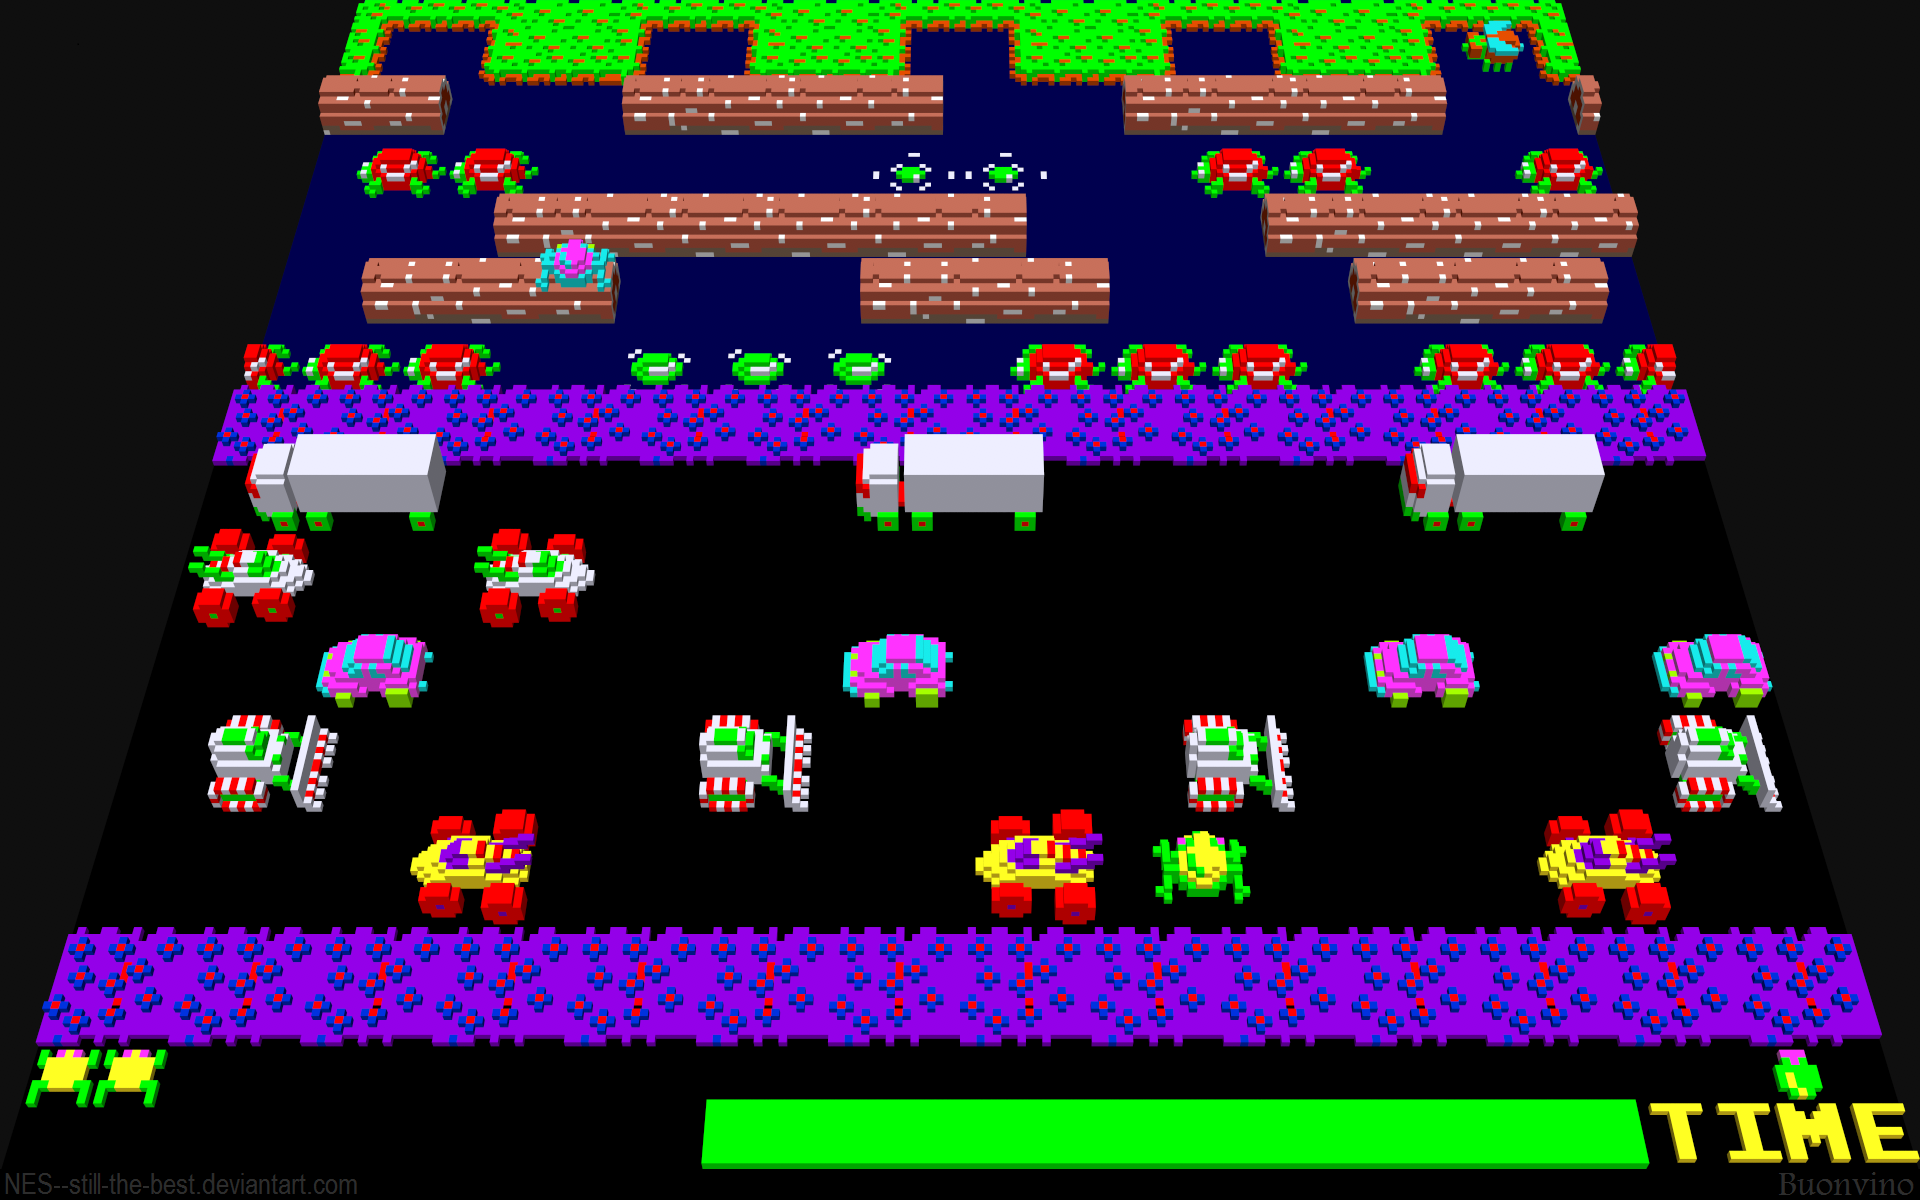 Frogger 3d By Nes Still The Best On Deviantart